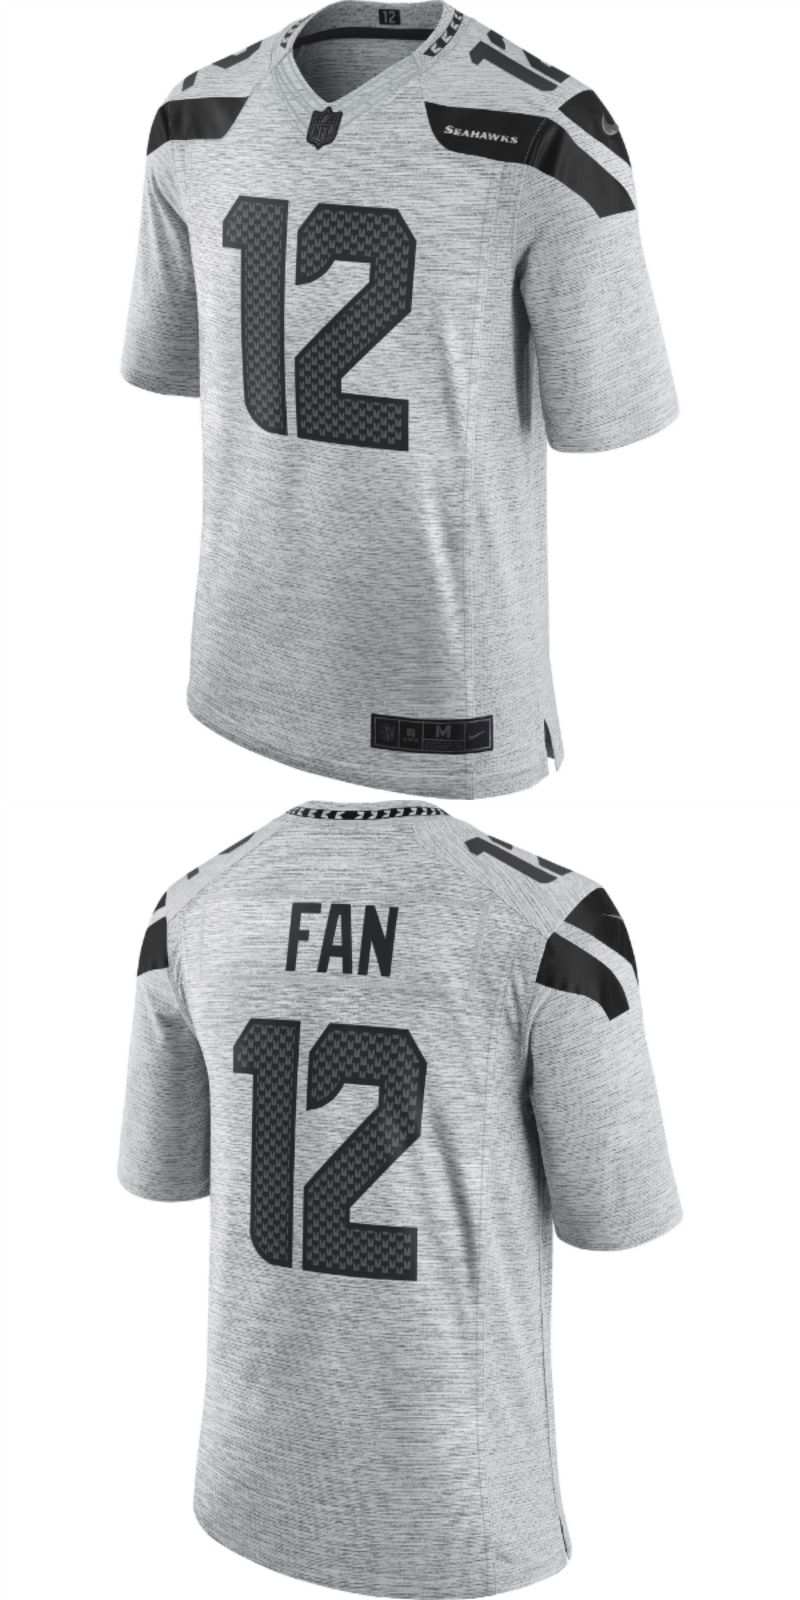 397b42751 UP TO 70% OFF. 12 Fan Seattle Seahawks Nike Gridiron Gray II Limited ...